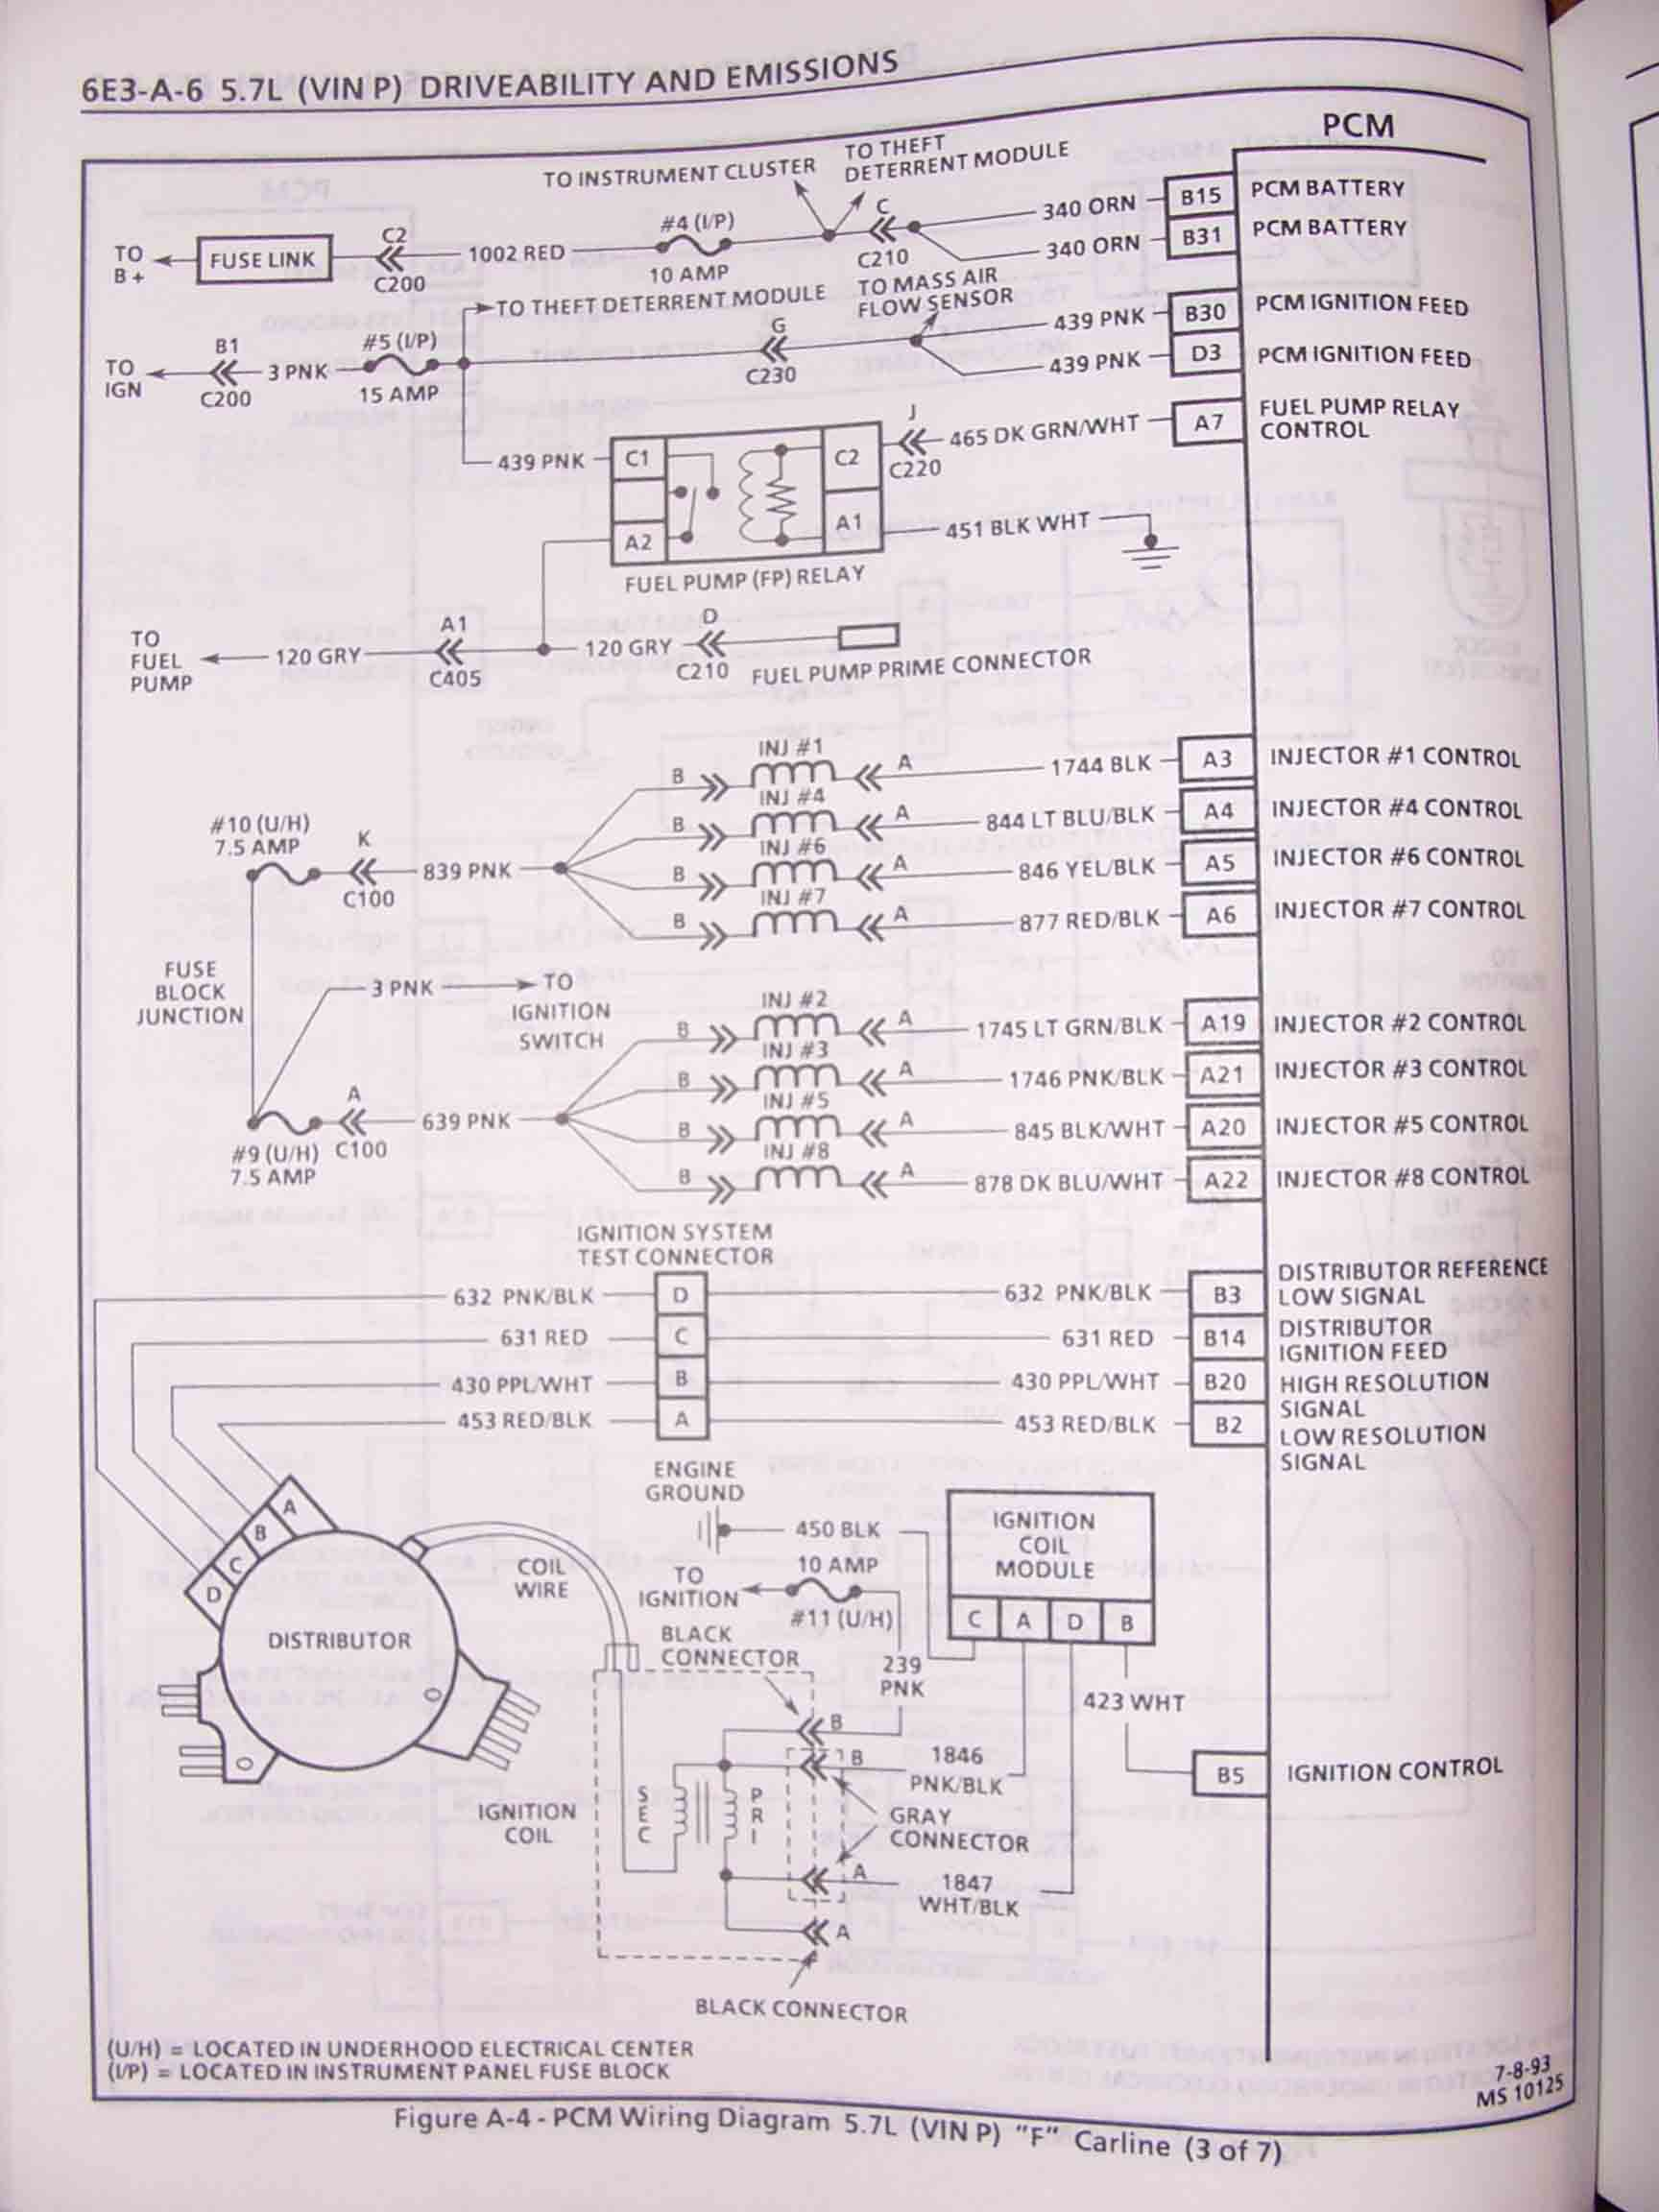 1995 Lt1 Wiring Harness Labeled Manual Guide Diagram 97 F Body Wire Schematics Rh Lt1swap Com Engine 94